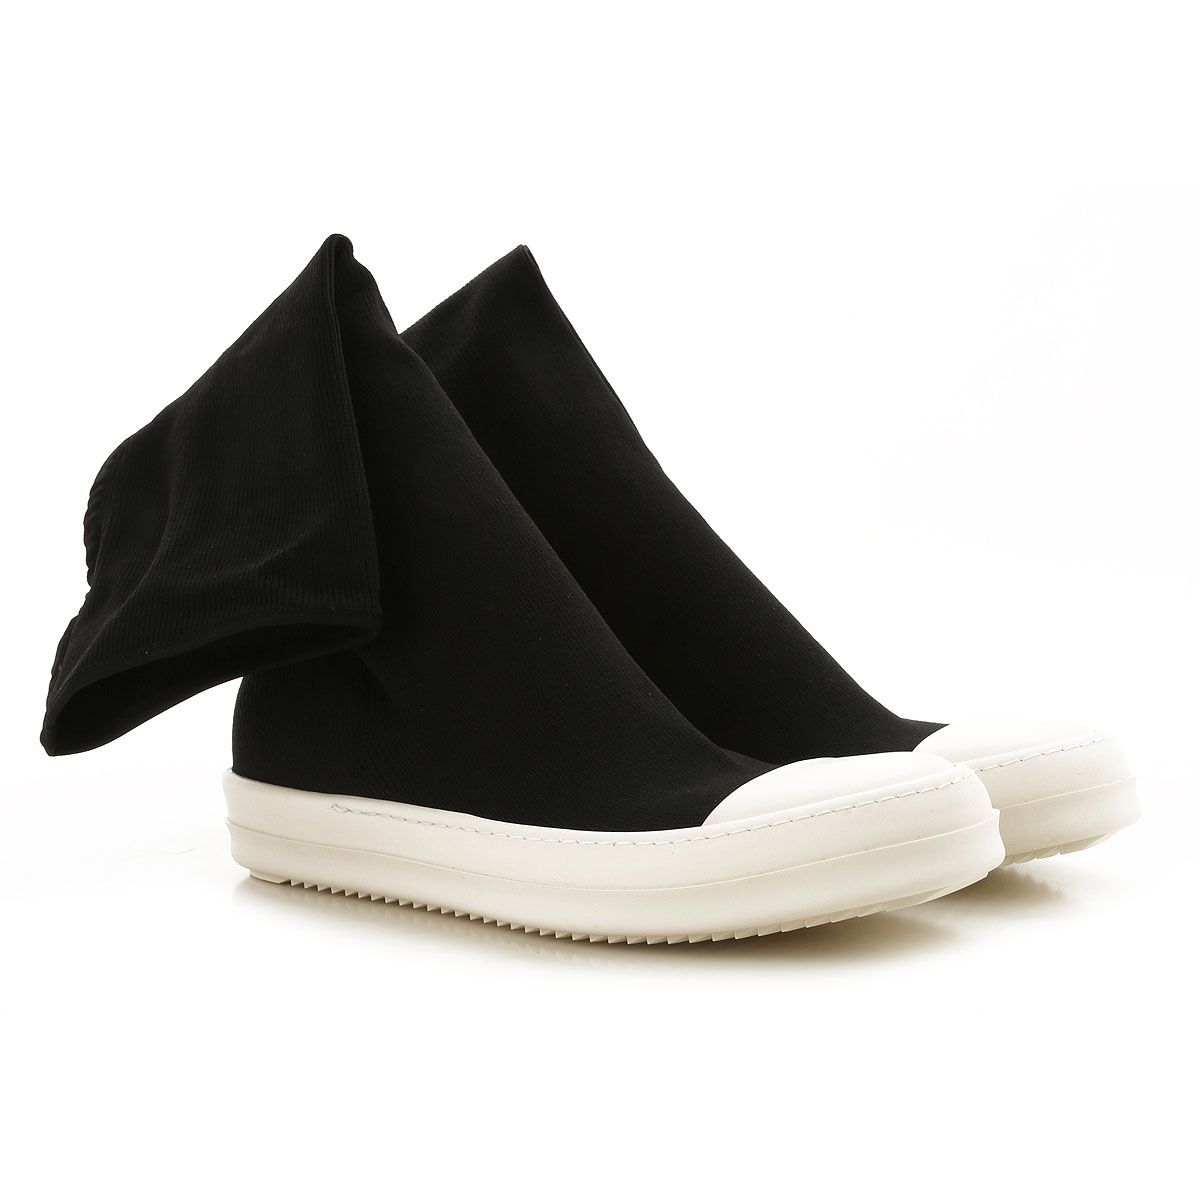 Image of Rick Owens DRKSHDW Boots for Men, Booties, Black, polyester, 2017, 10 6.5 8 9